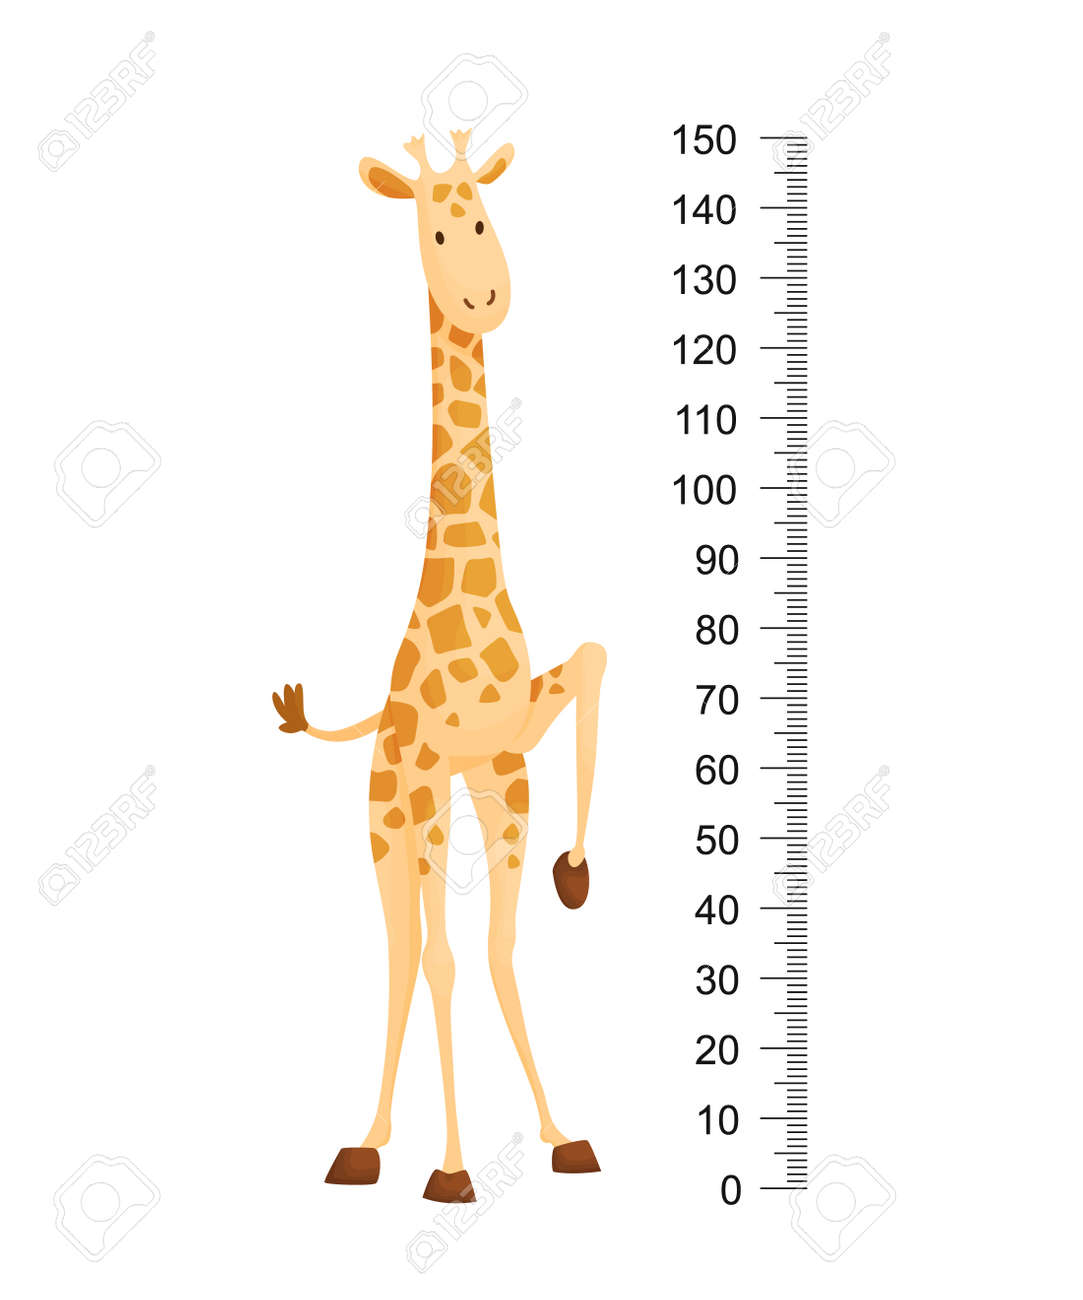 Funny giraffe. Cheerful funny giraffe with long neck. Giraffe meter wall or height chart or wall sticker. Illustration with scale from 2 to 150 centimeter to measure growth - 158029360